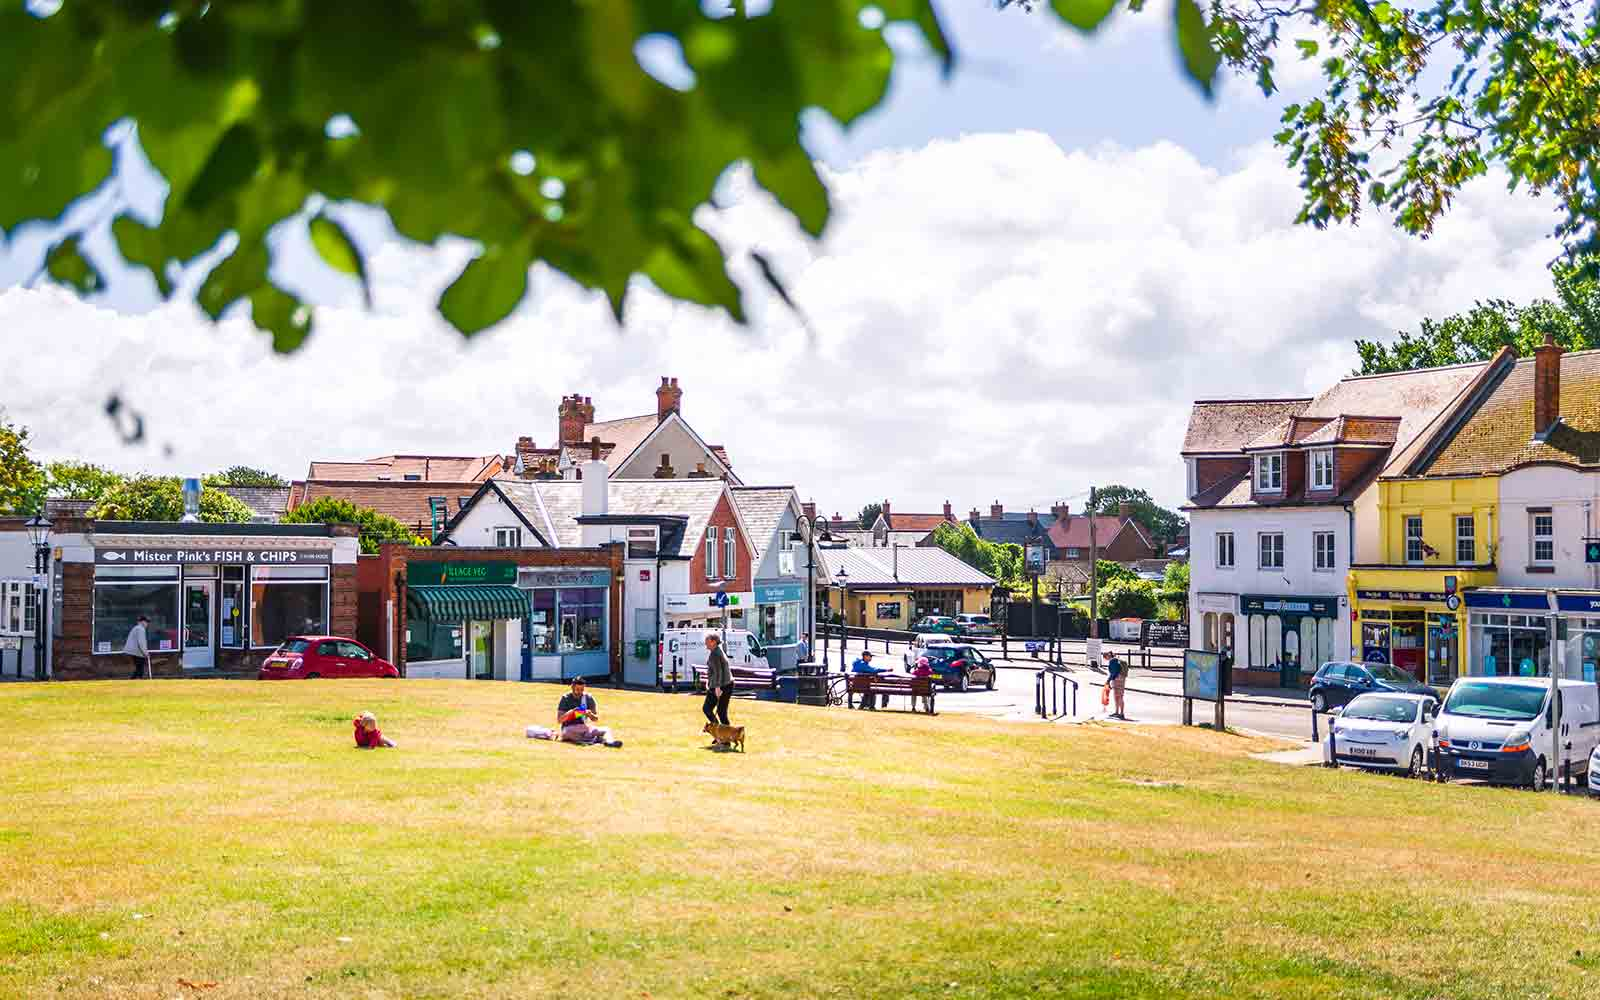 Visit Milford on Sea Sitting on the village green